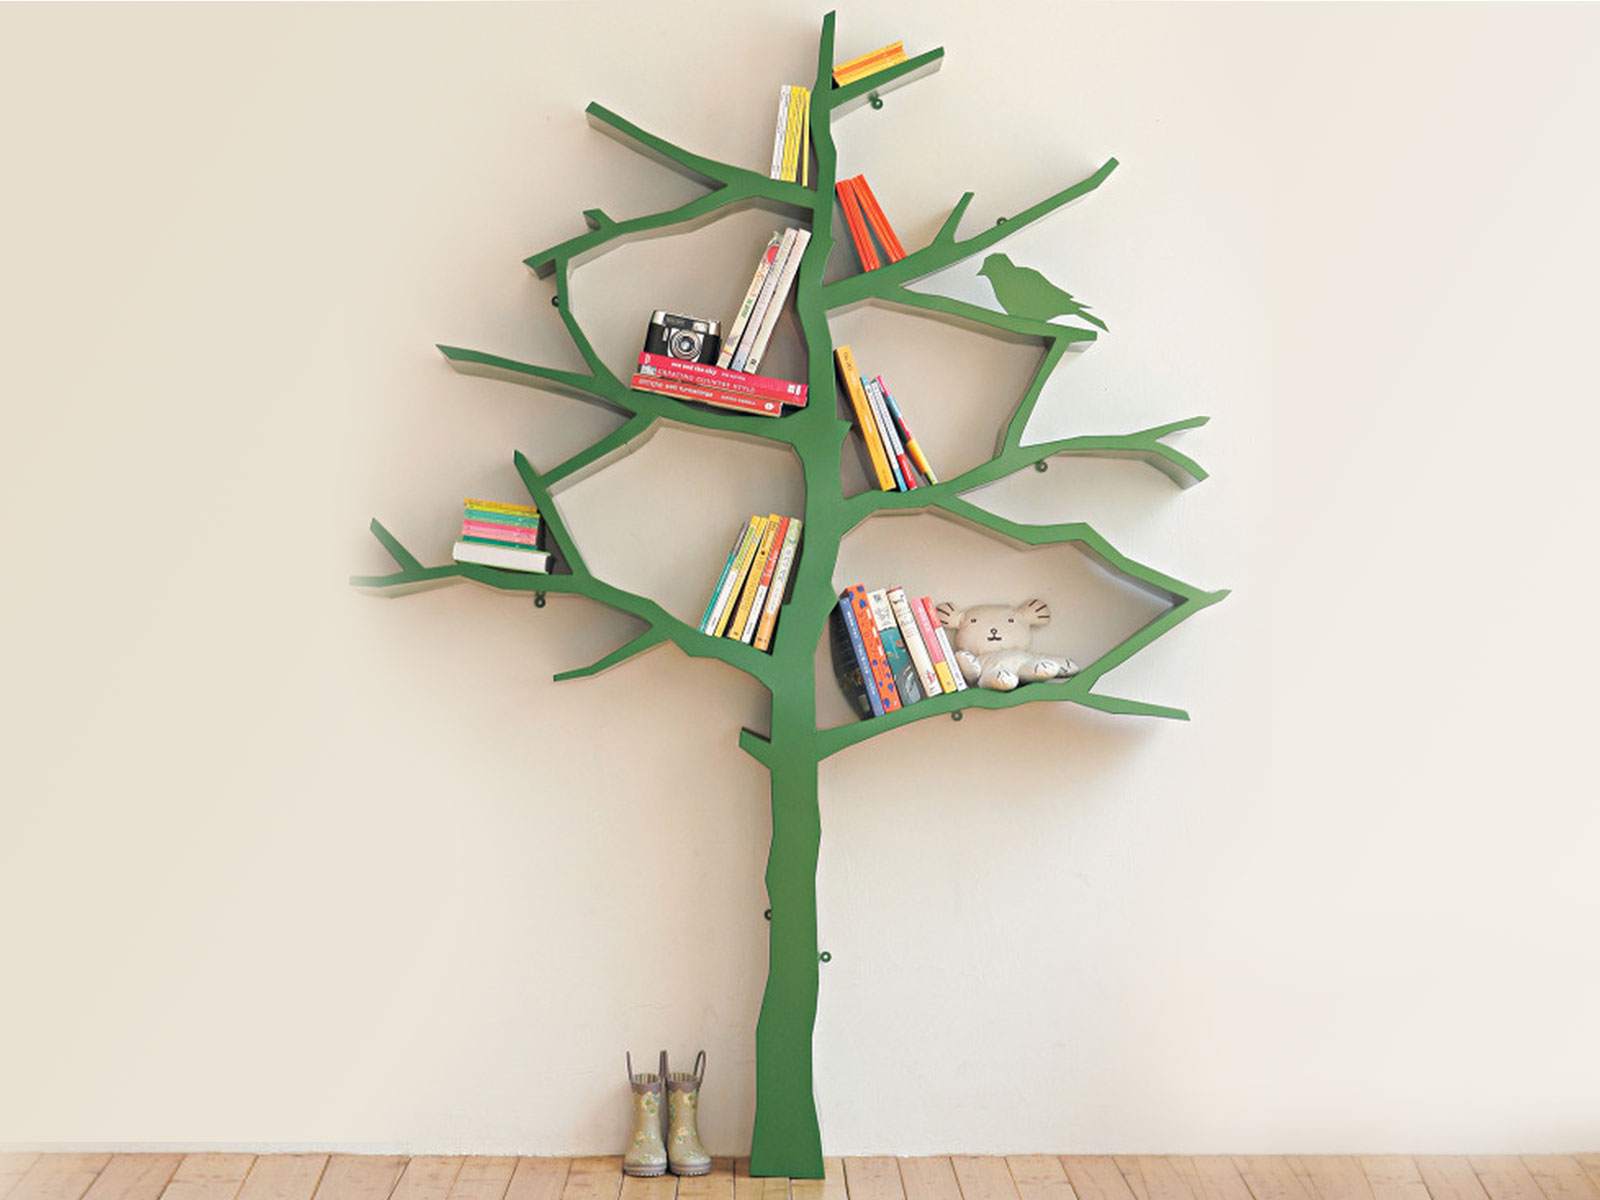 3 shawn soh tree bookshelf